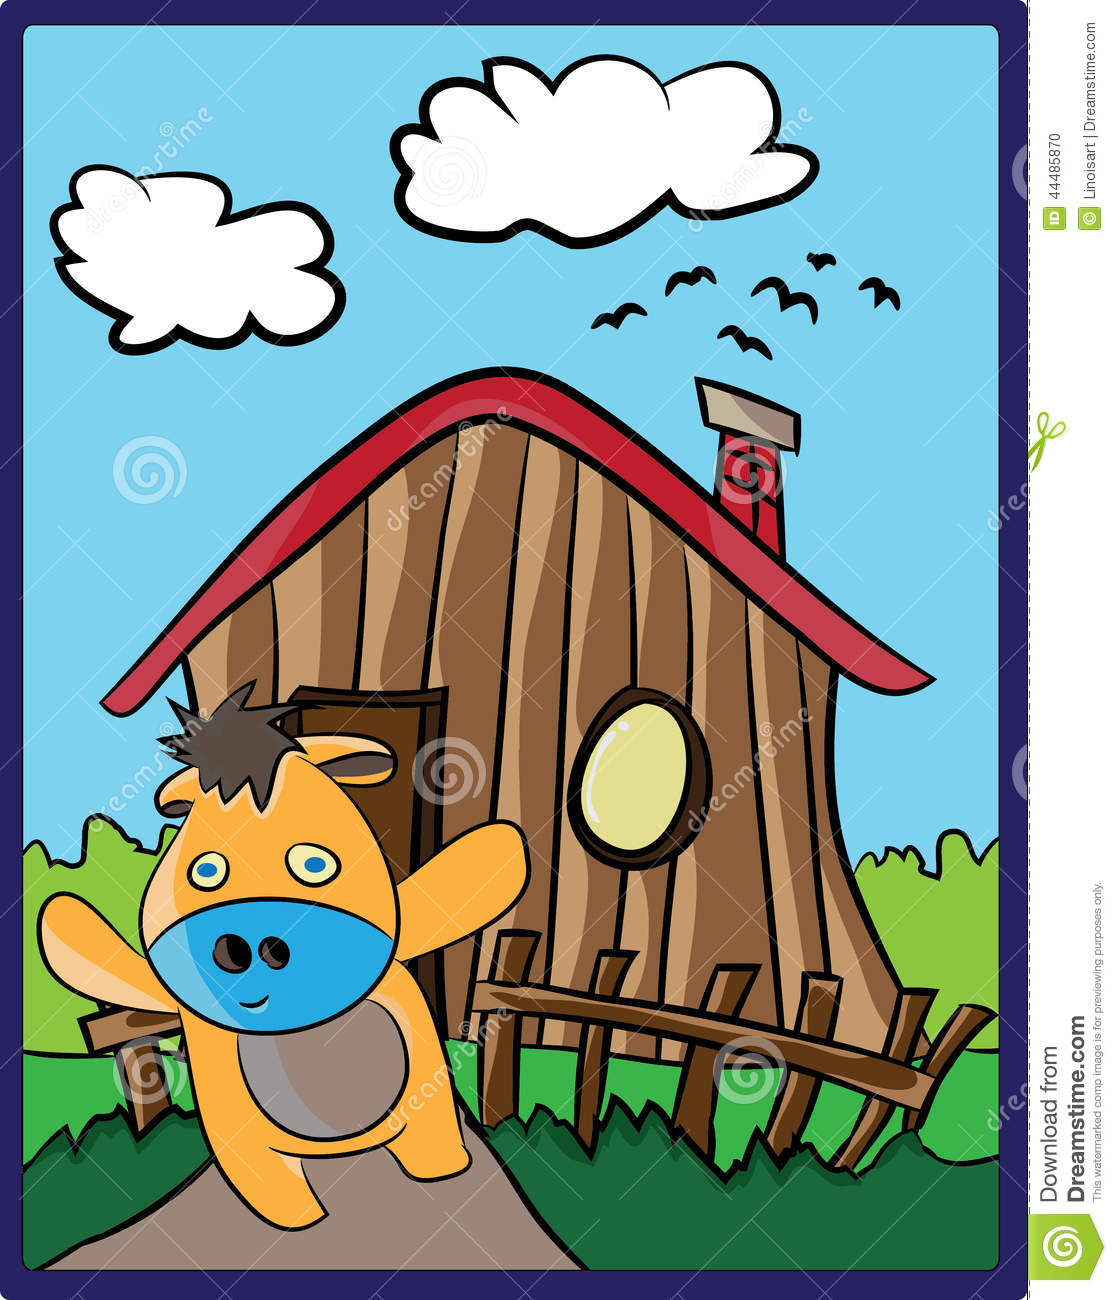 Download Cow Cartoon Stock Illustration Of Image